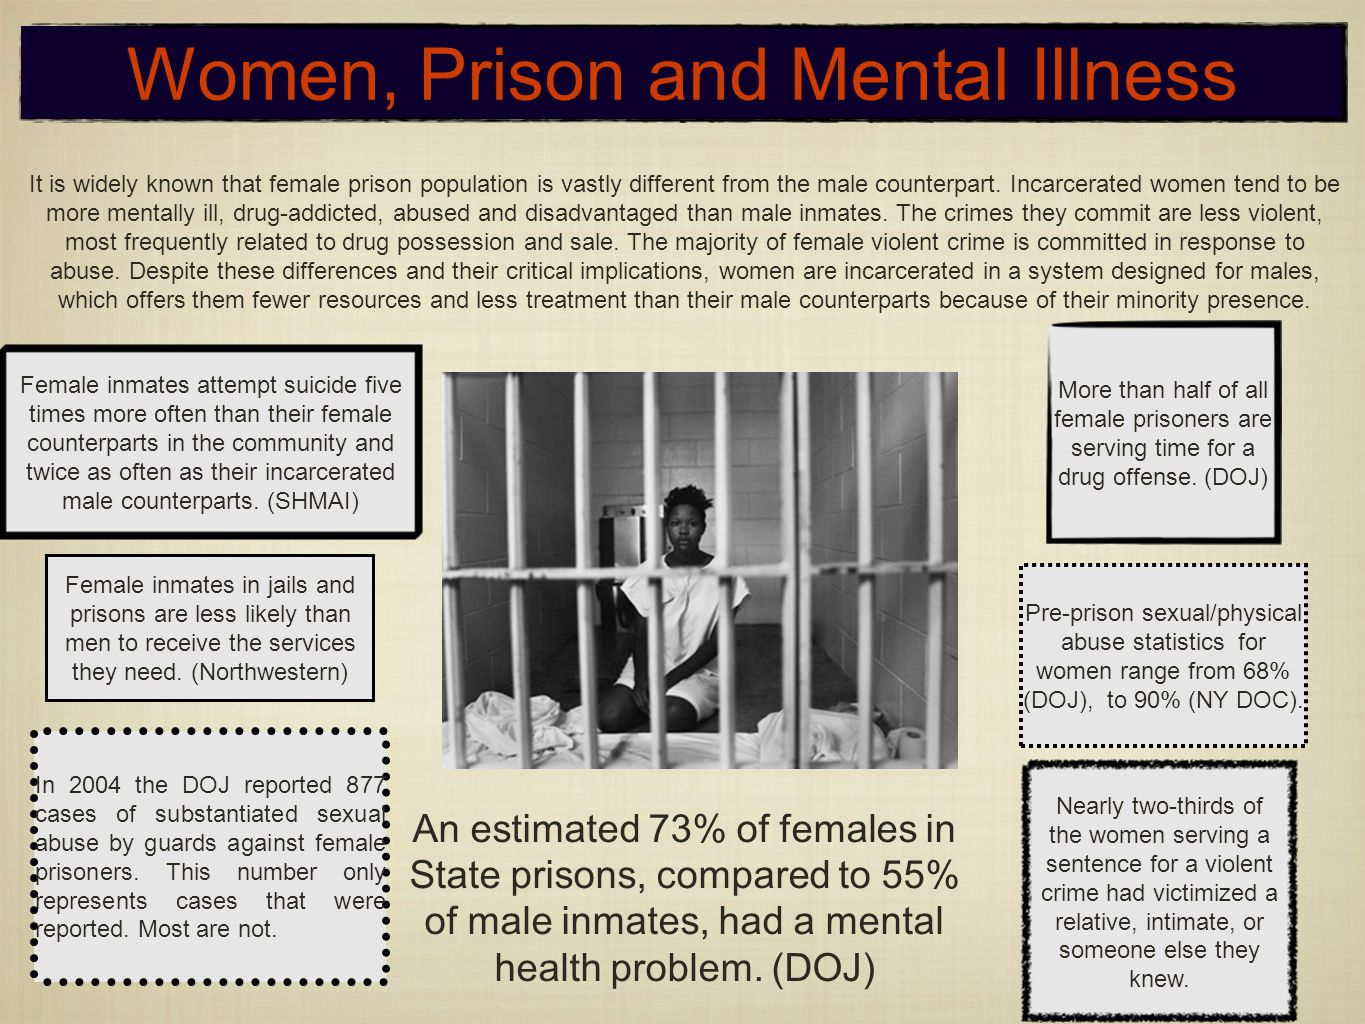 Nearly two-thirds of the women serving a sentence for a violent crime had victimized a relative, intimate, or someone else they knew.